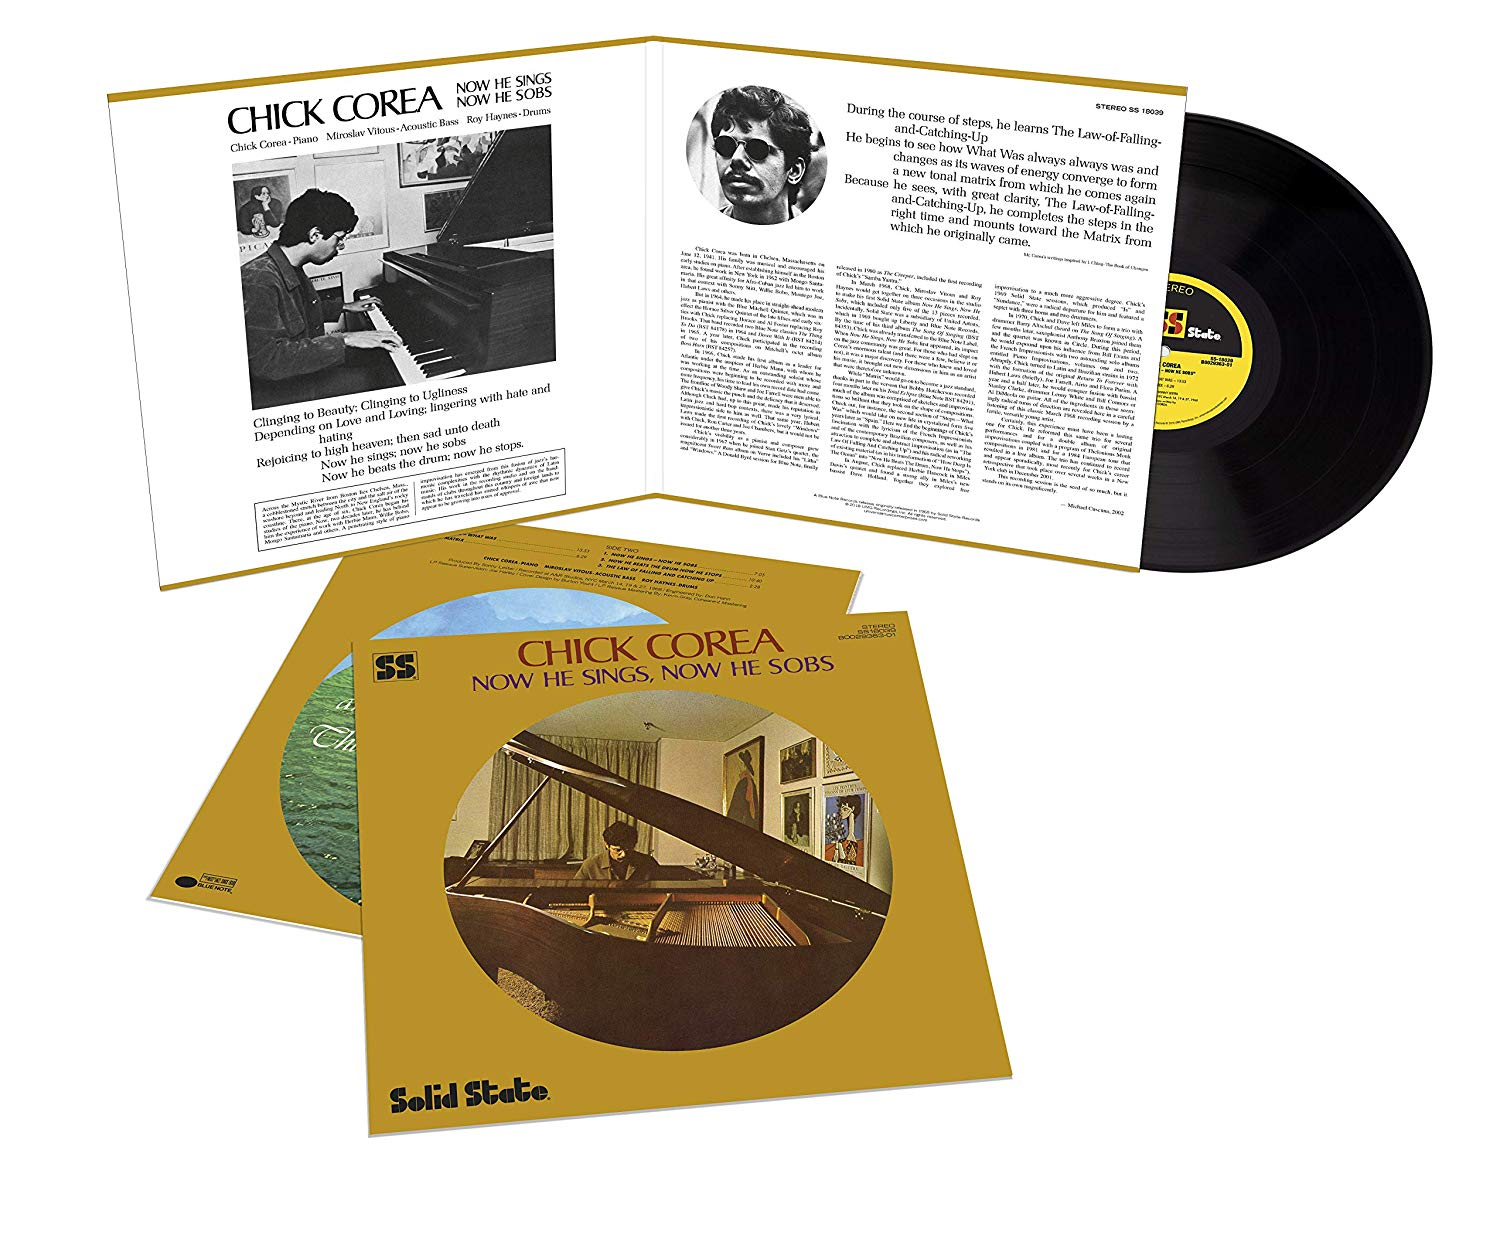 Chick Corea: Now He Sings, Now He Sobs - Tone Poet (Universal) 180g LP (SS18039)